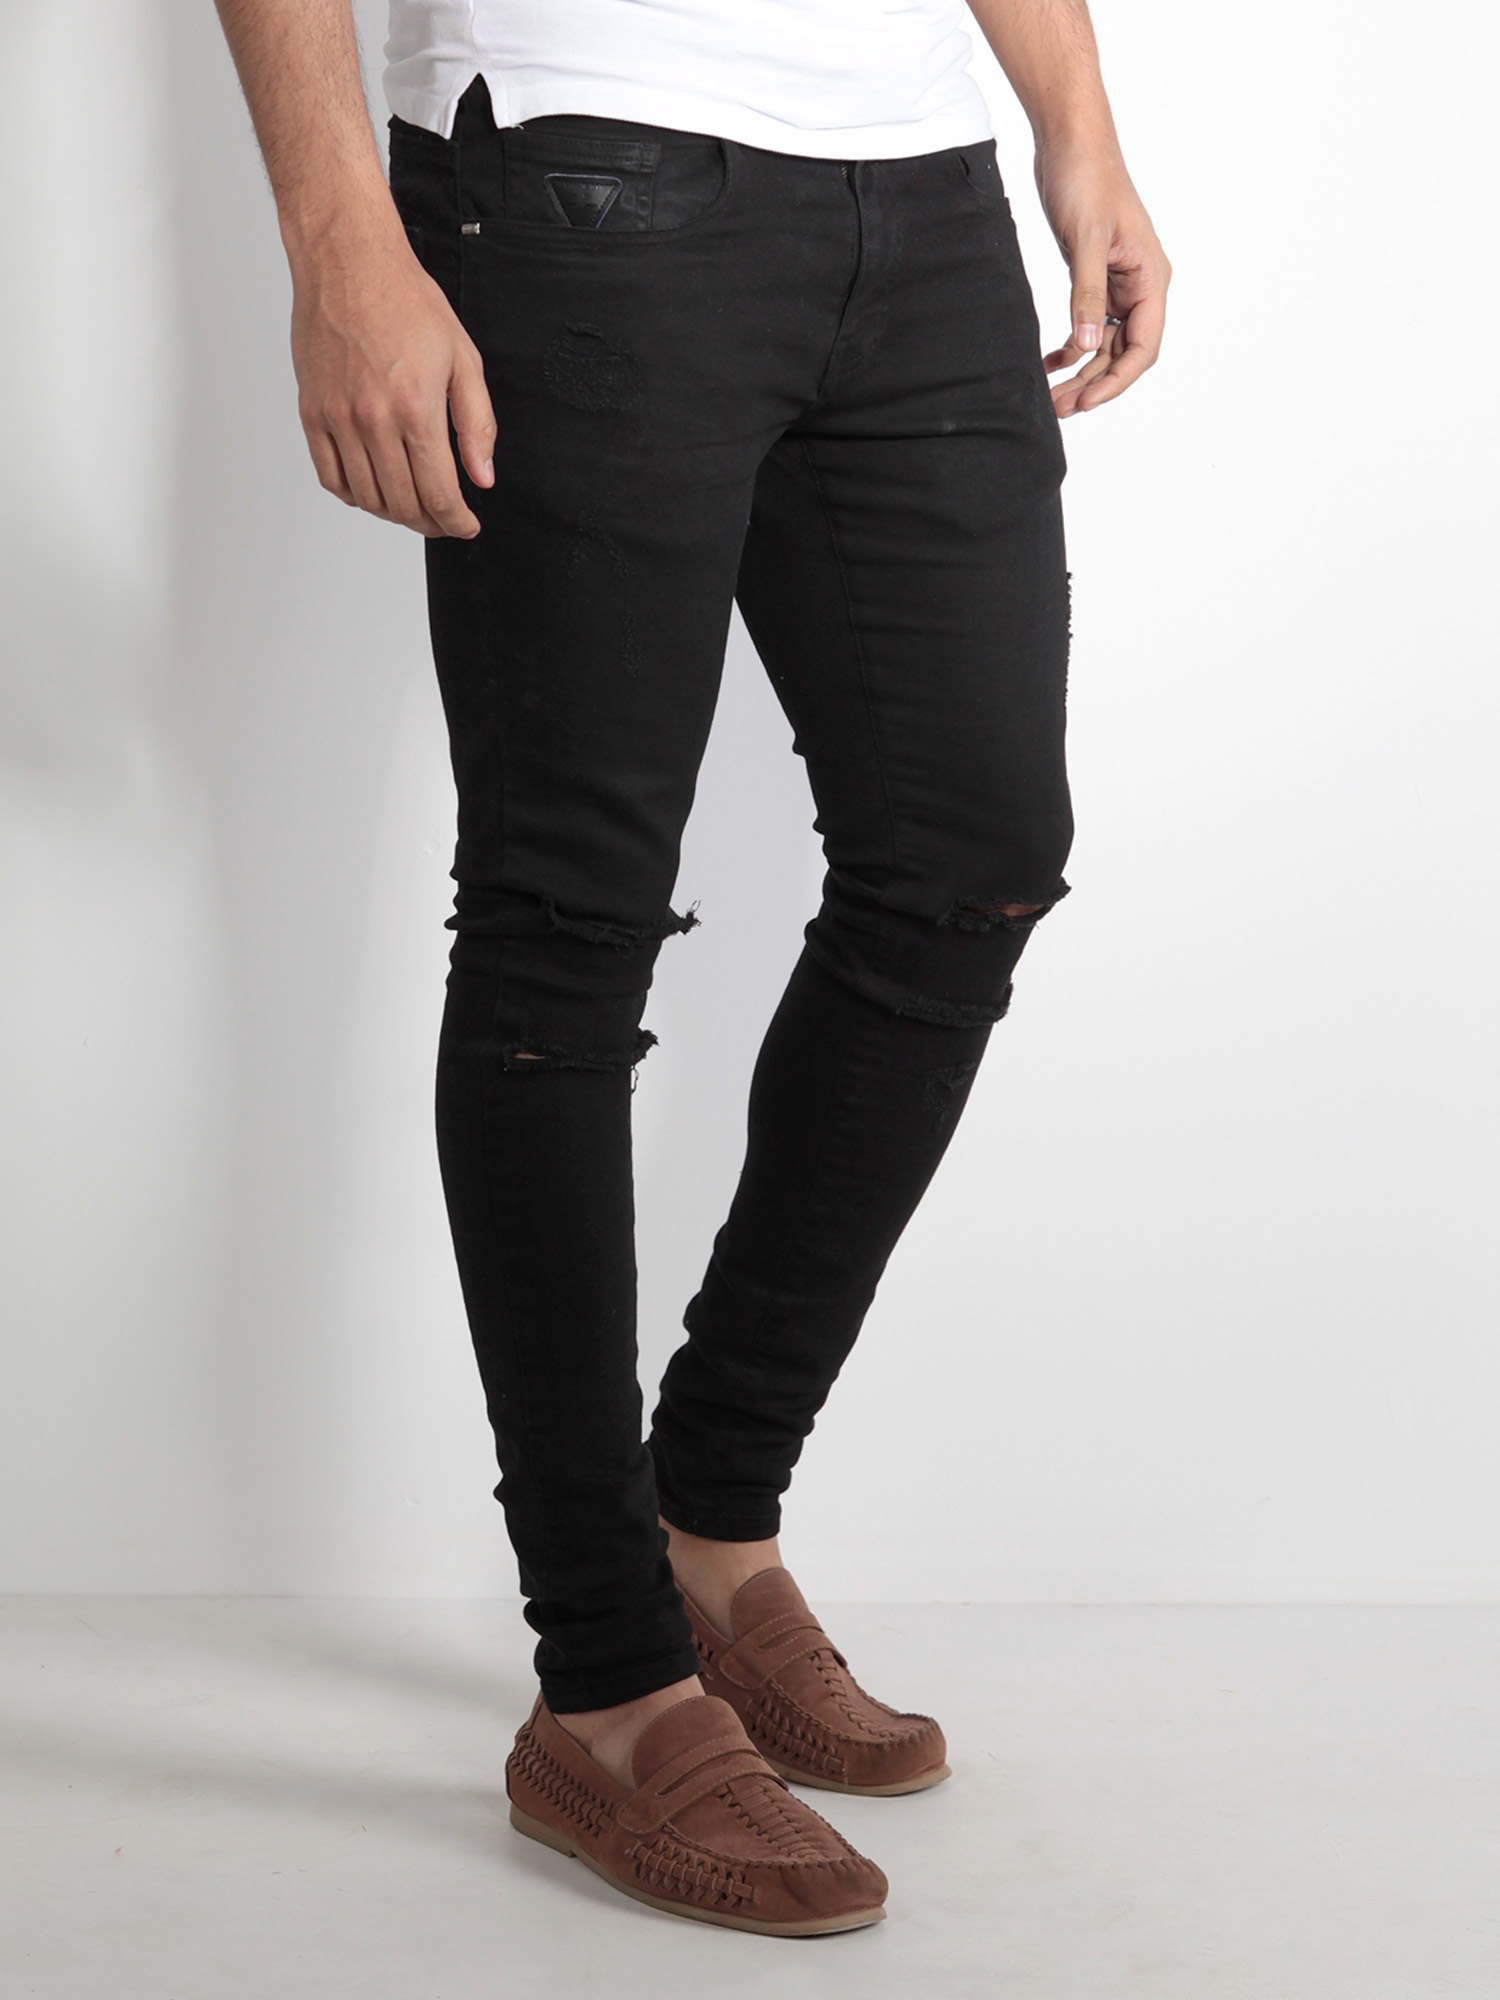 Mens Skinny Jeans With Ankle Zips